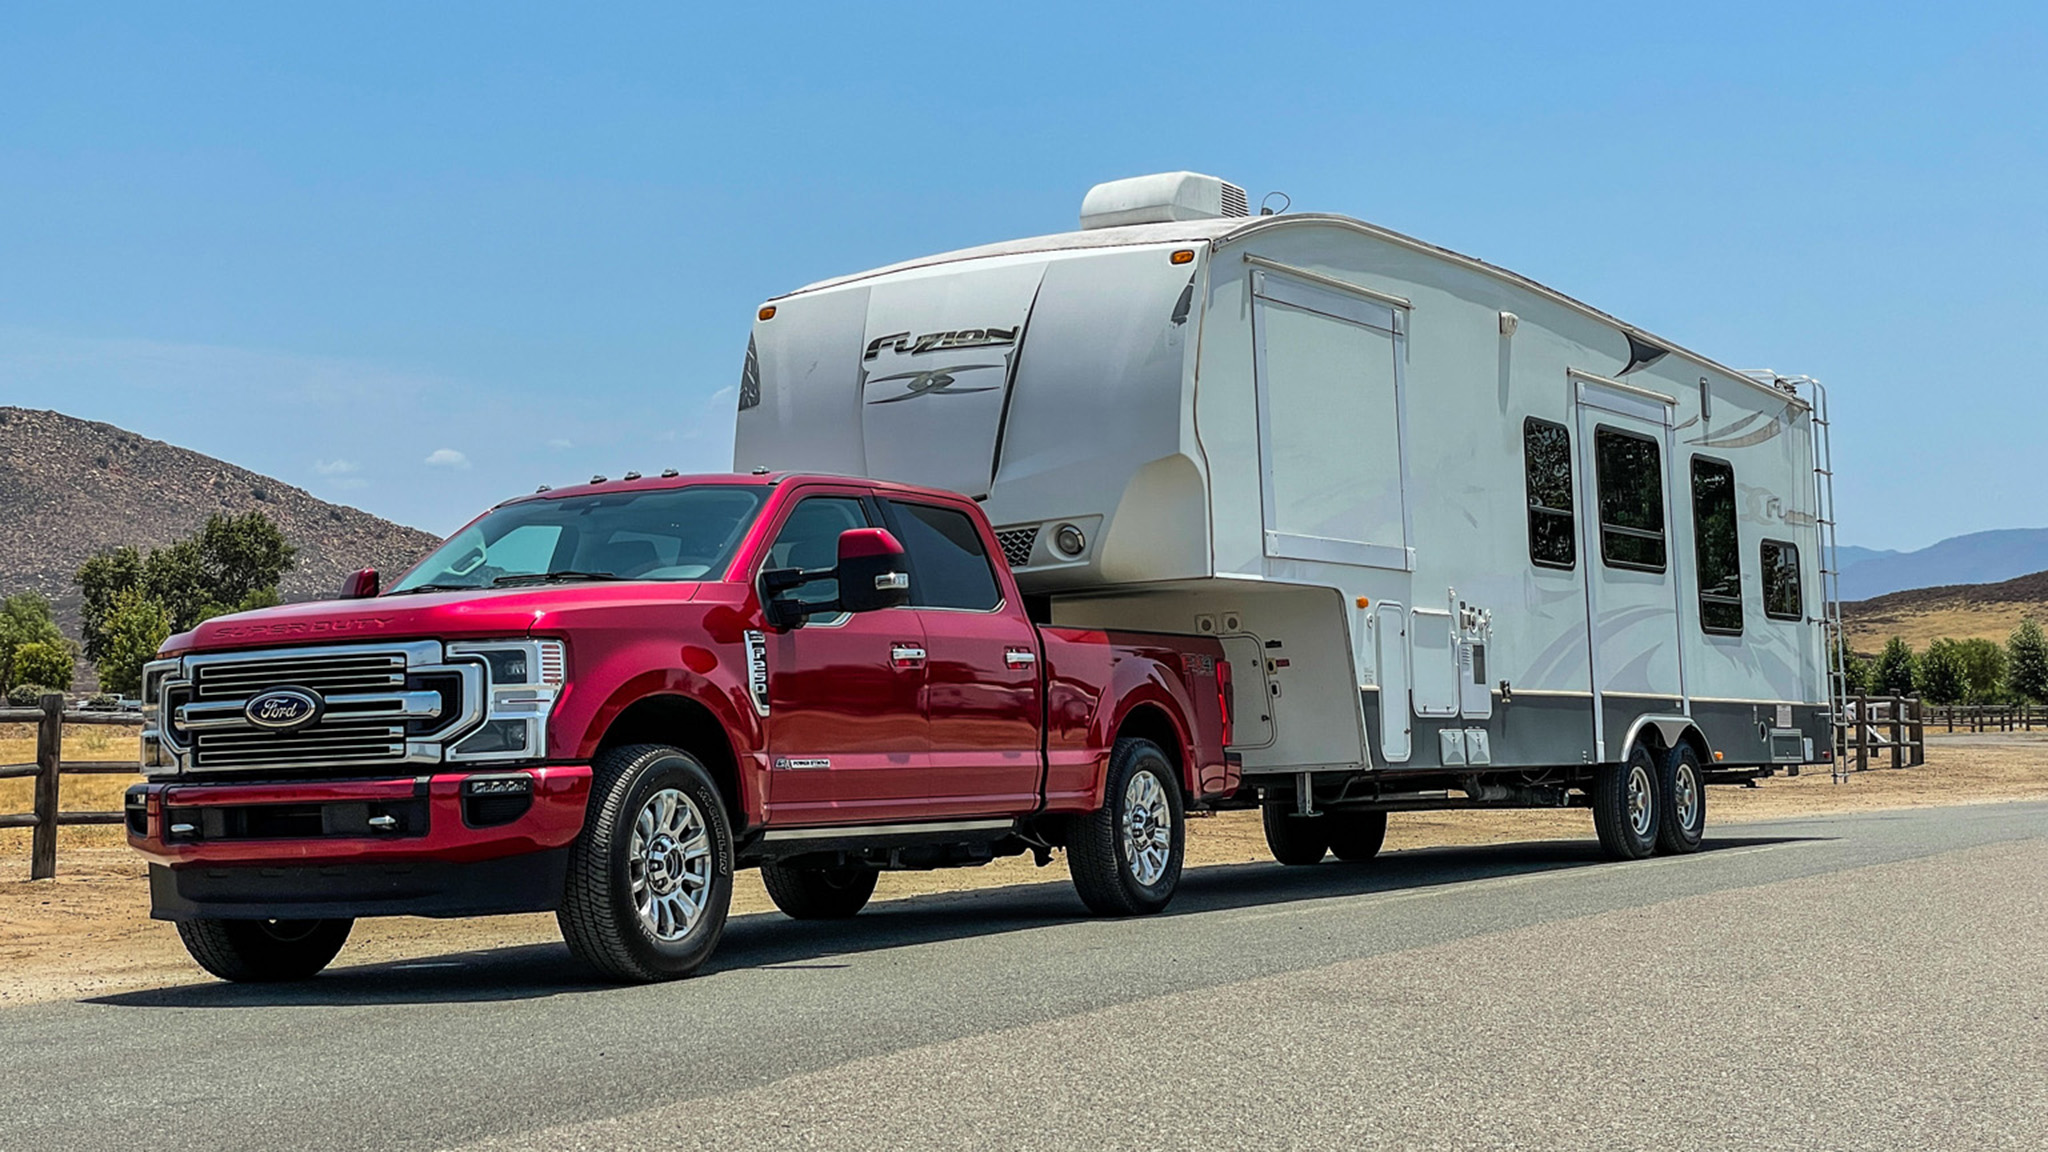 Installing a Curt Manufacturing Q24 Fifth-Wheel Hitch On a 2020 Ford F-Series Super Duty